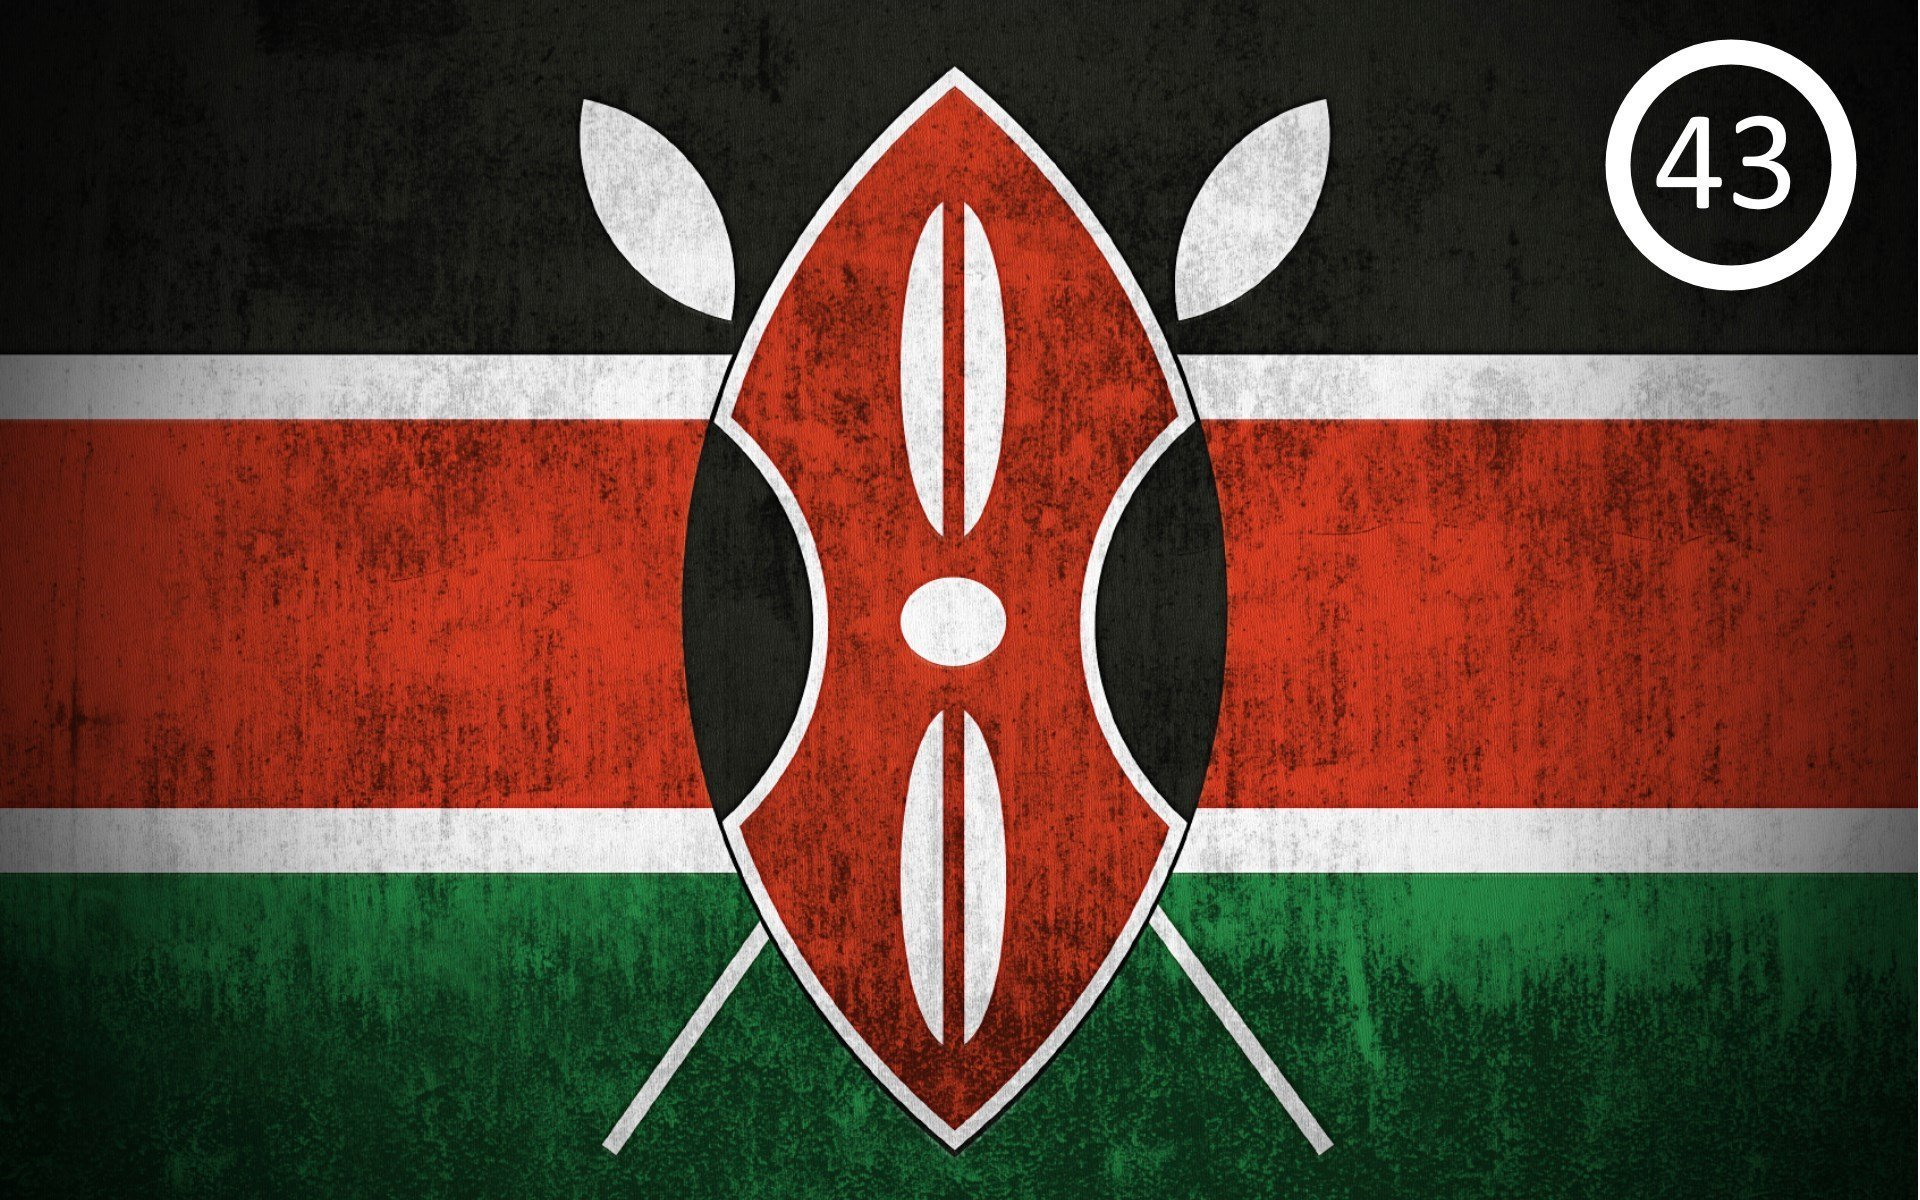 Did you know there are guys who rank flags of countries by how beautiful they are? Apparently the Kenyan flag is ranked among 50 of the most beautiful flags. The most beautiful belongs to Mexico.